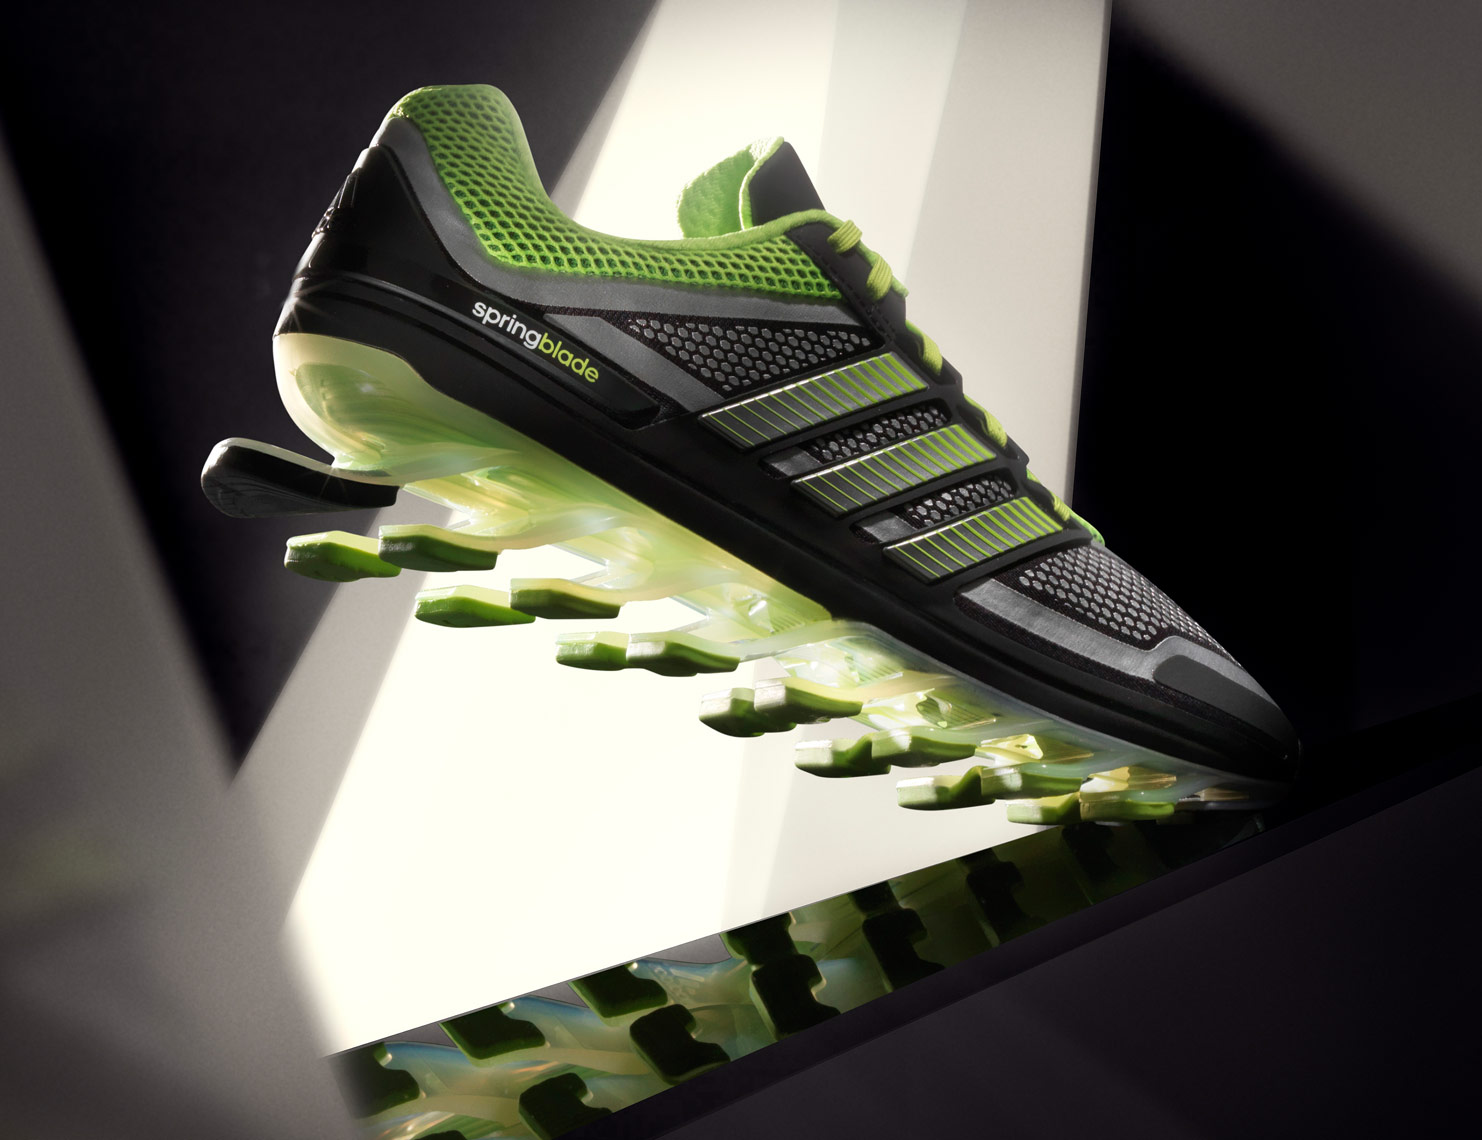 adidas Springblade_running shoe in futuristic background